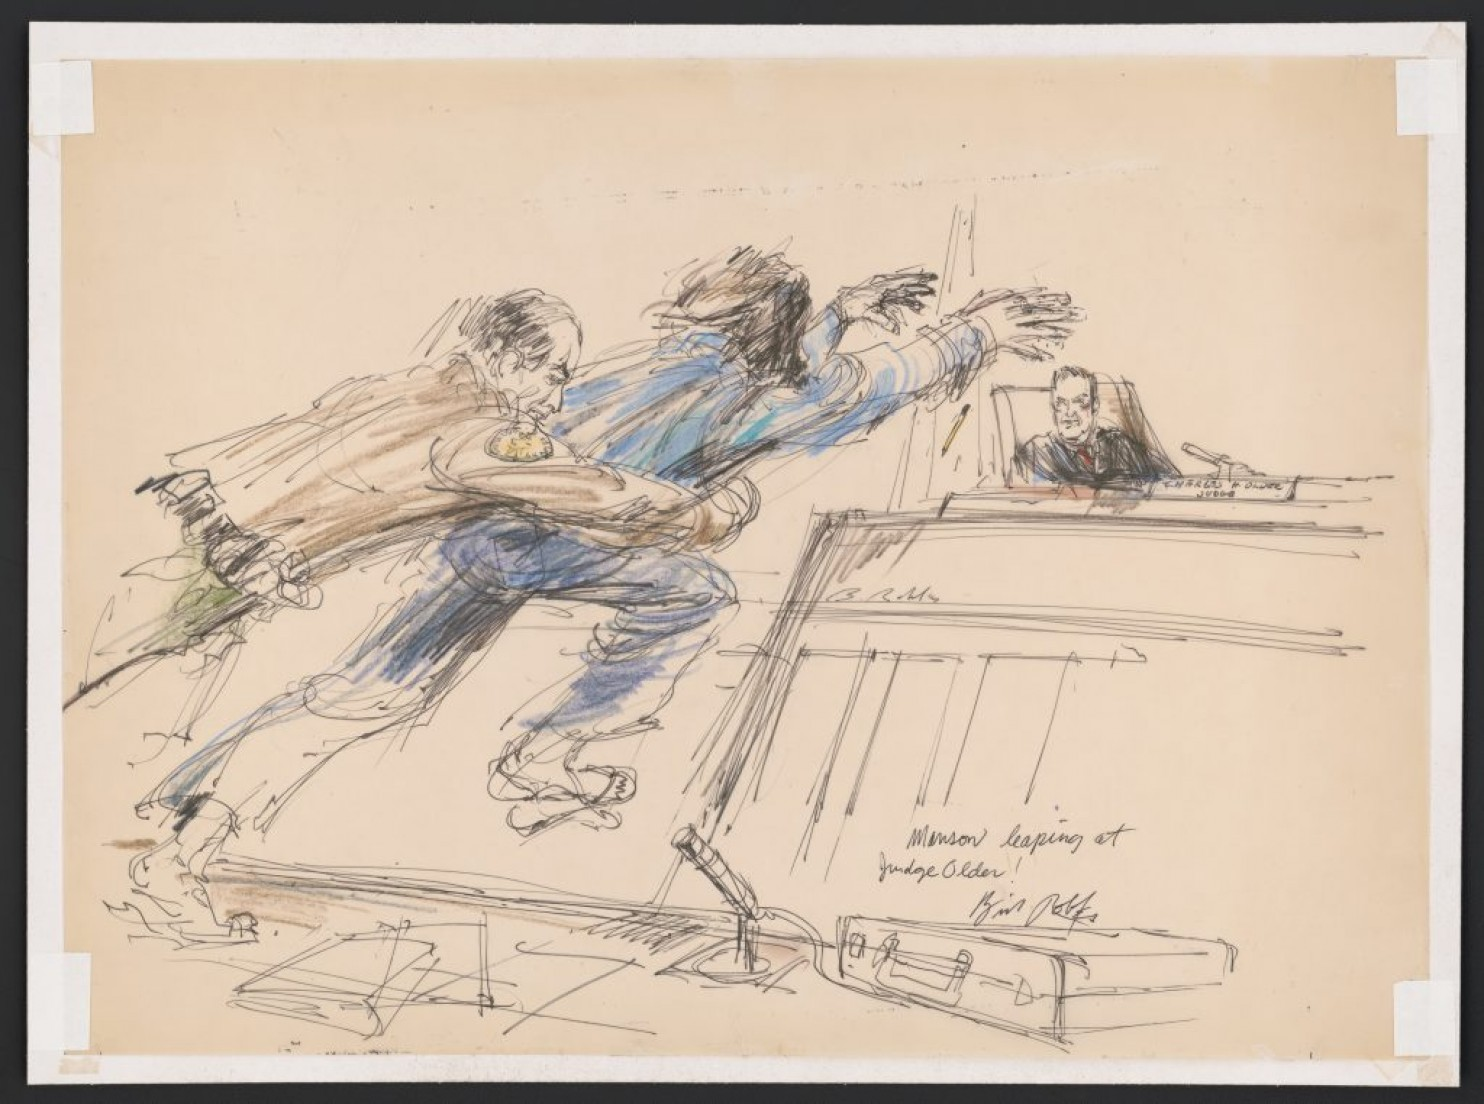 Bill Robles's sketch of Charles Manson leaping toward Judge Charles Older in 1970. (Gift of Tom Girardi via Library of Congress.) (Image and caption from The Washington Post)